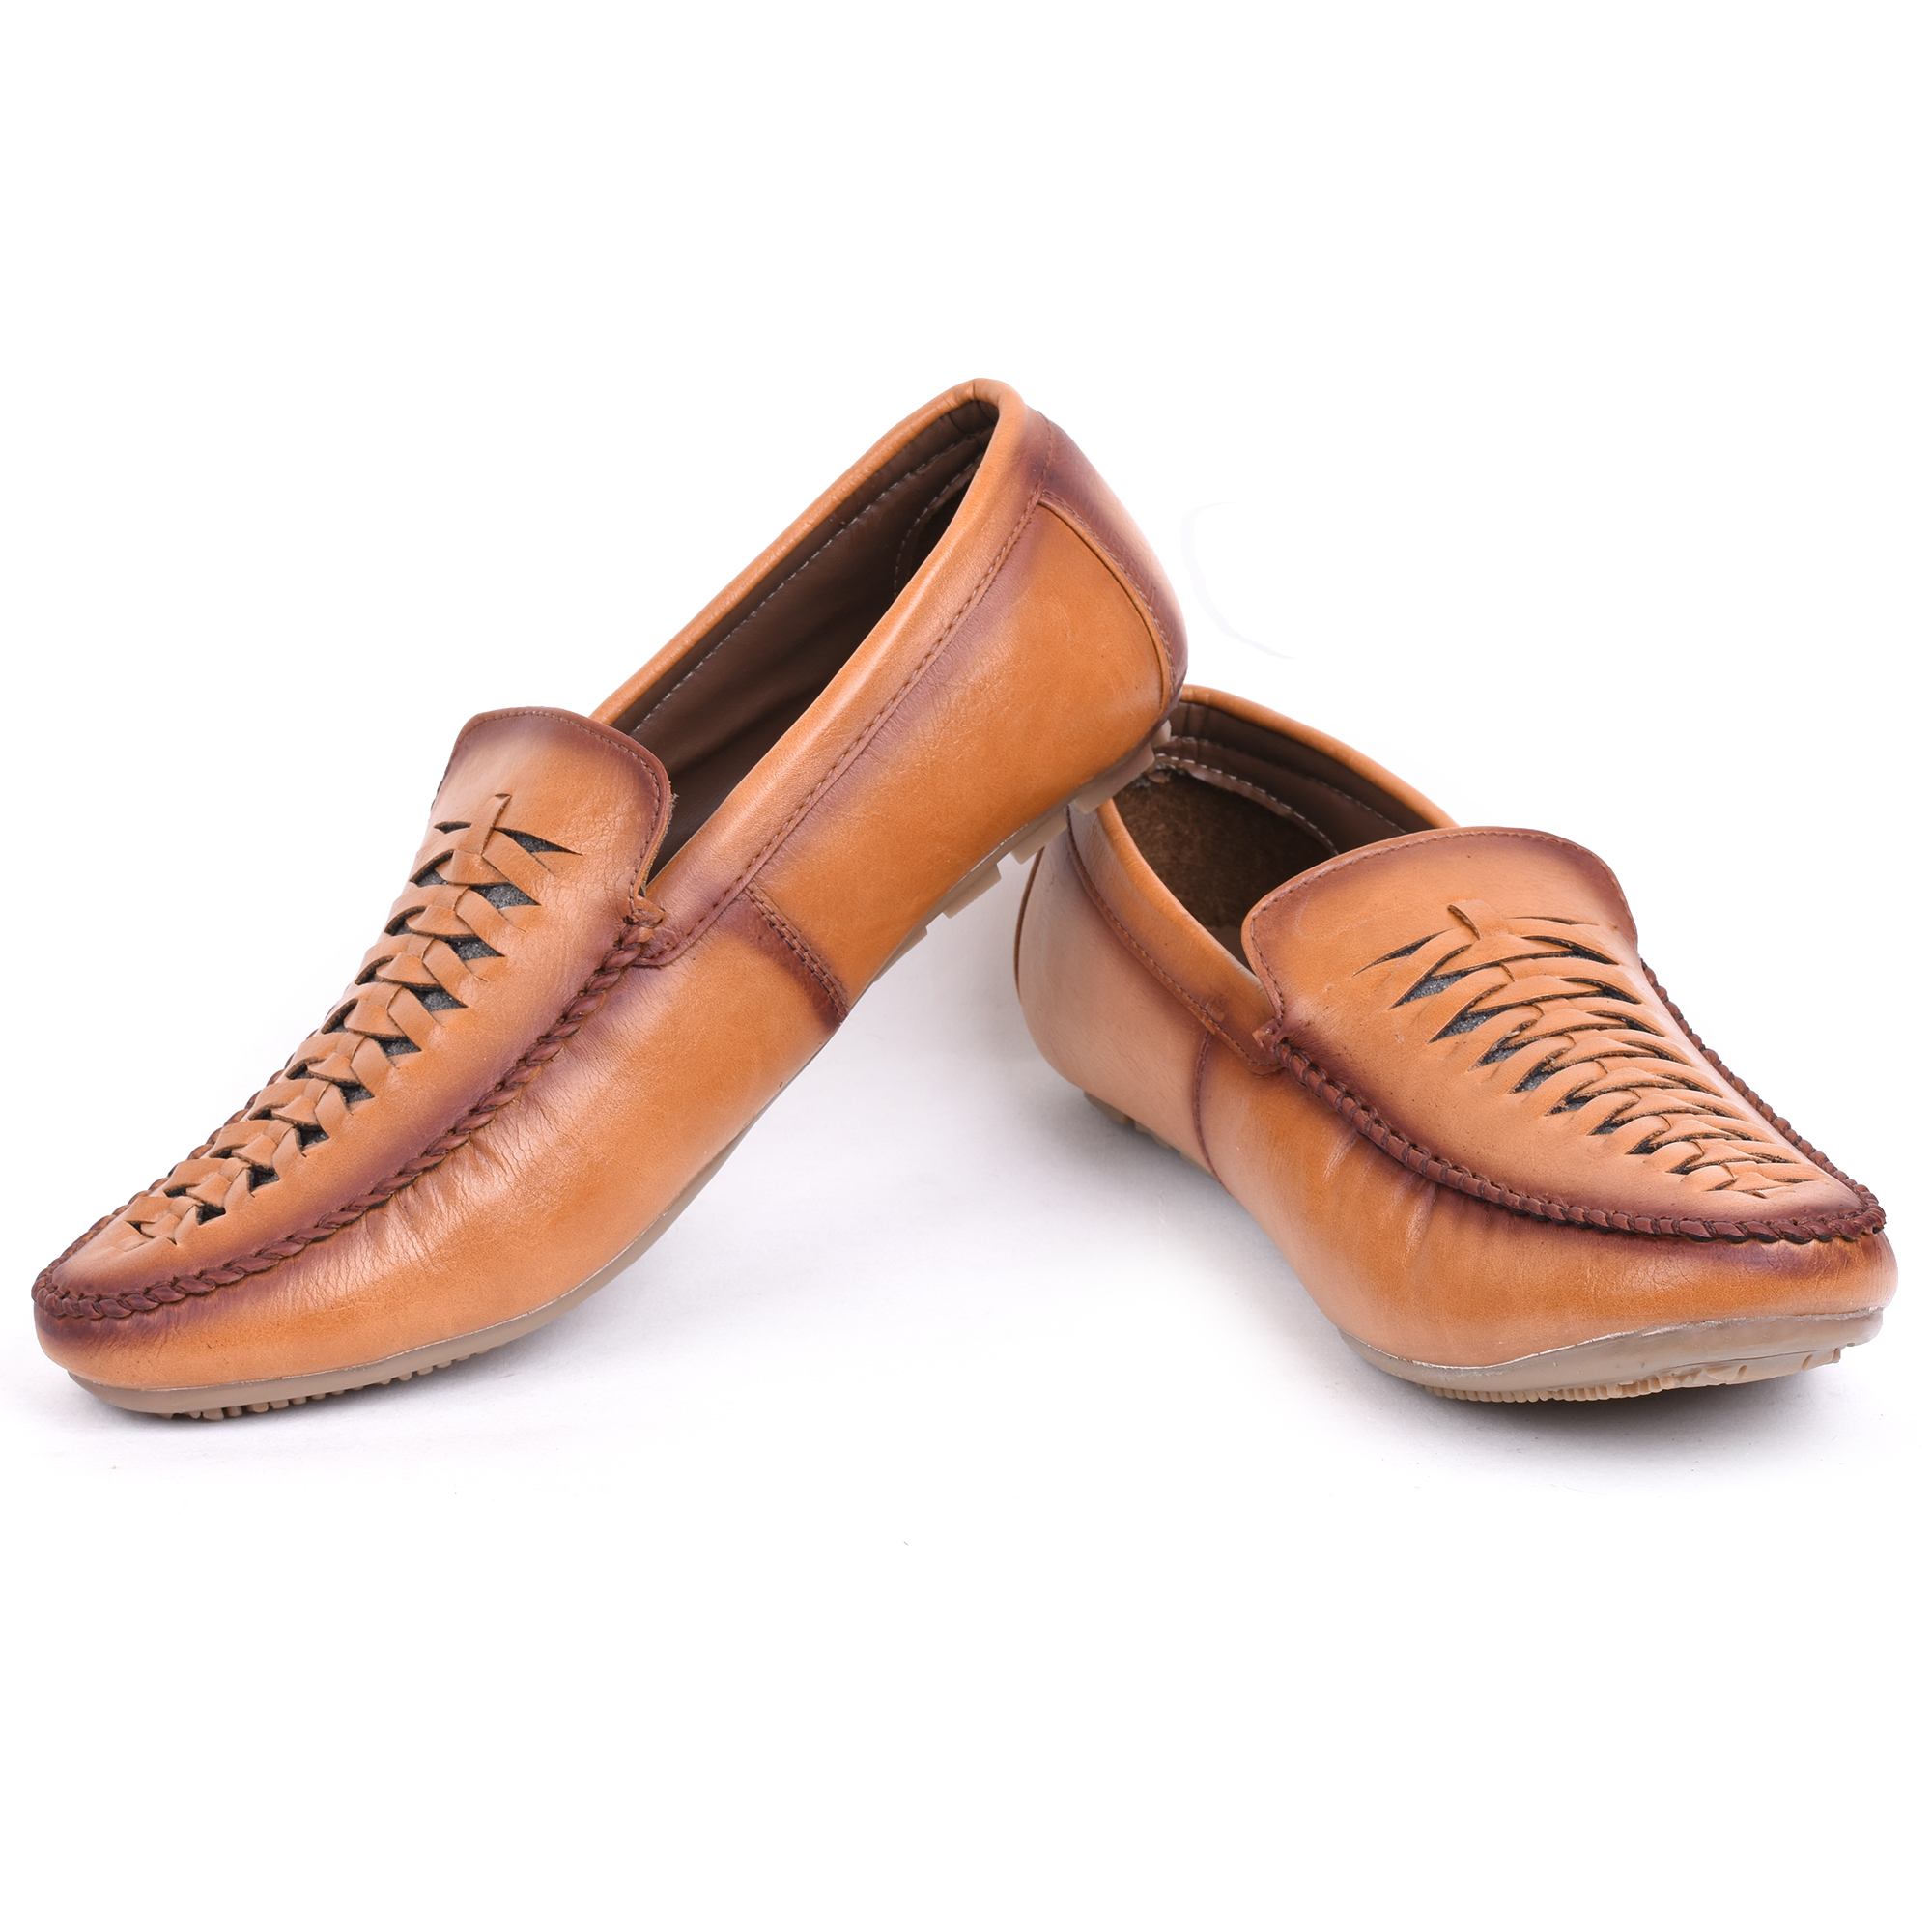 buy branded loafers india 28 images which are the best